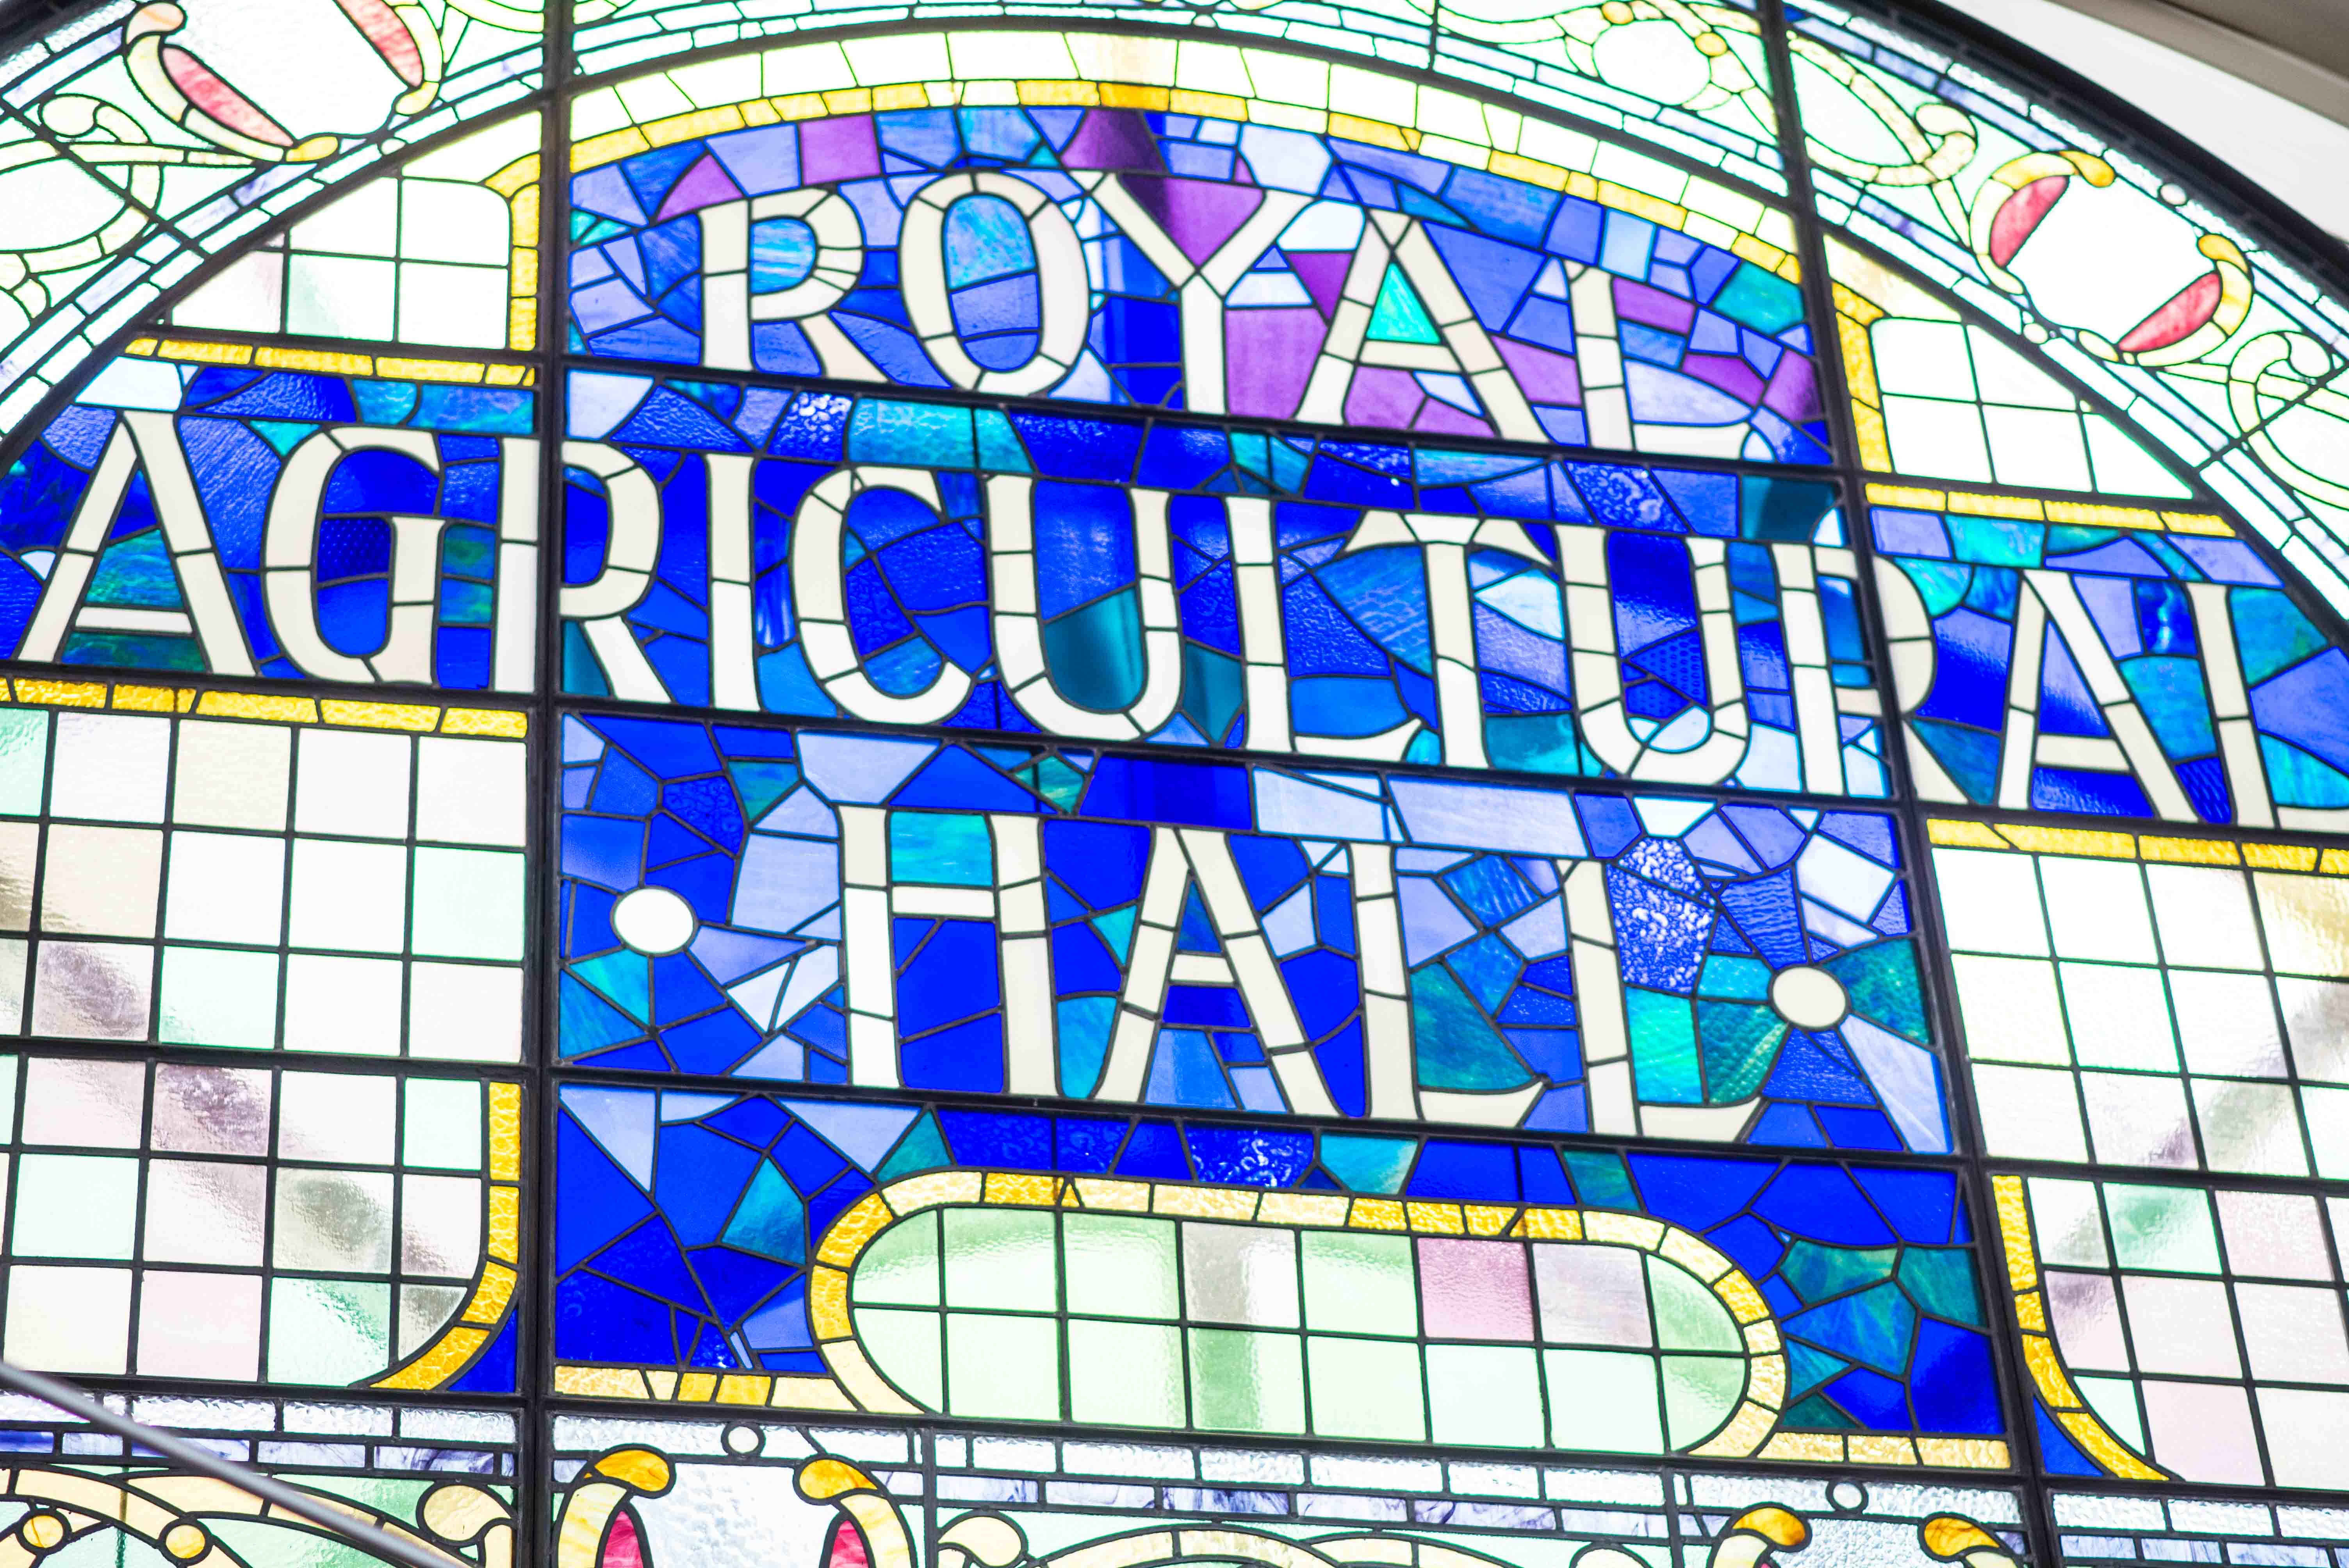 Royal Agricultural Hall